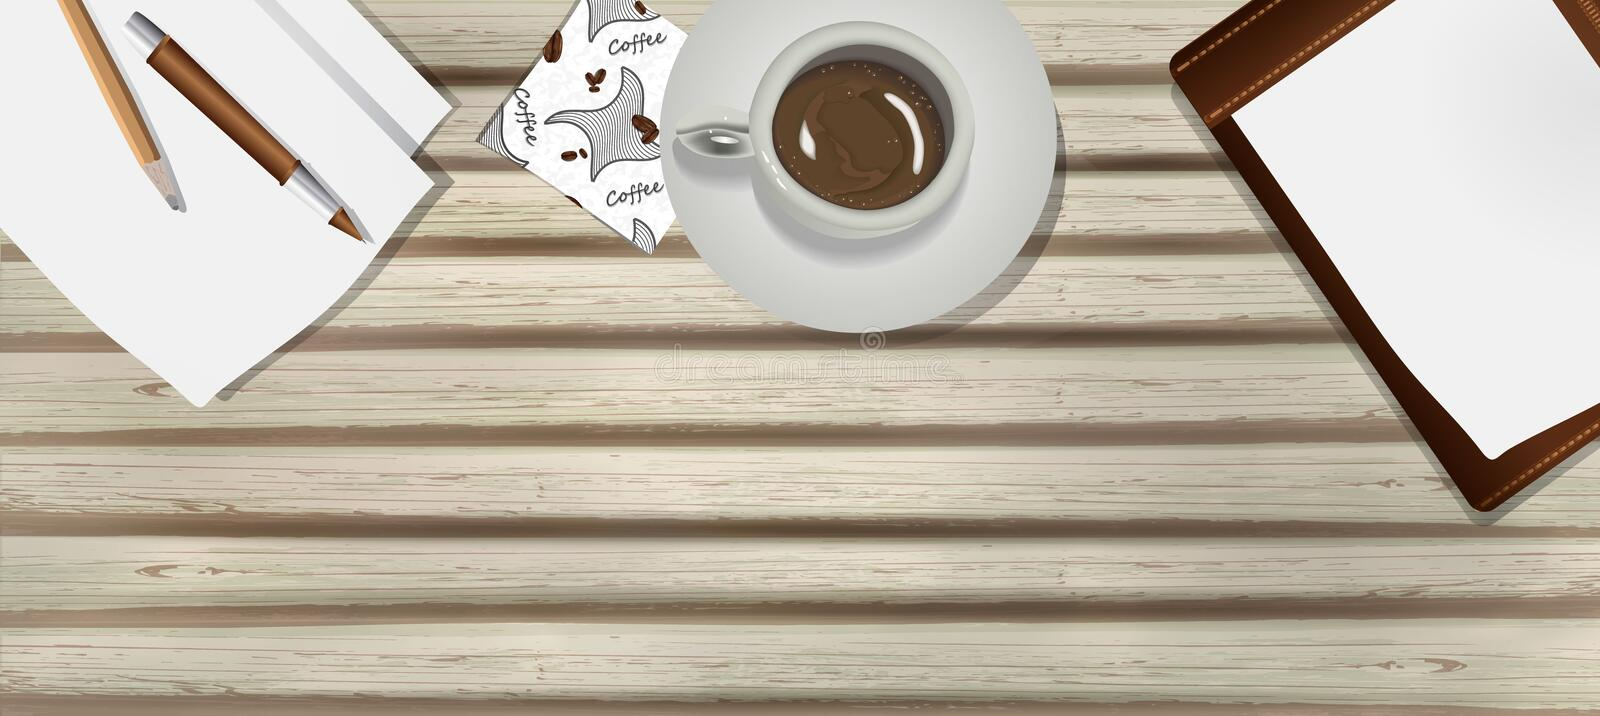 Old, wooden table with a Cup of coffee, paper, pen and pencil in realism style. business workplace, vector background for design. Coffee Cup and business items stock illustration